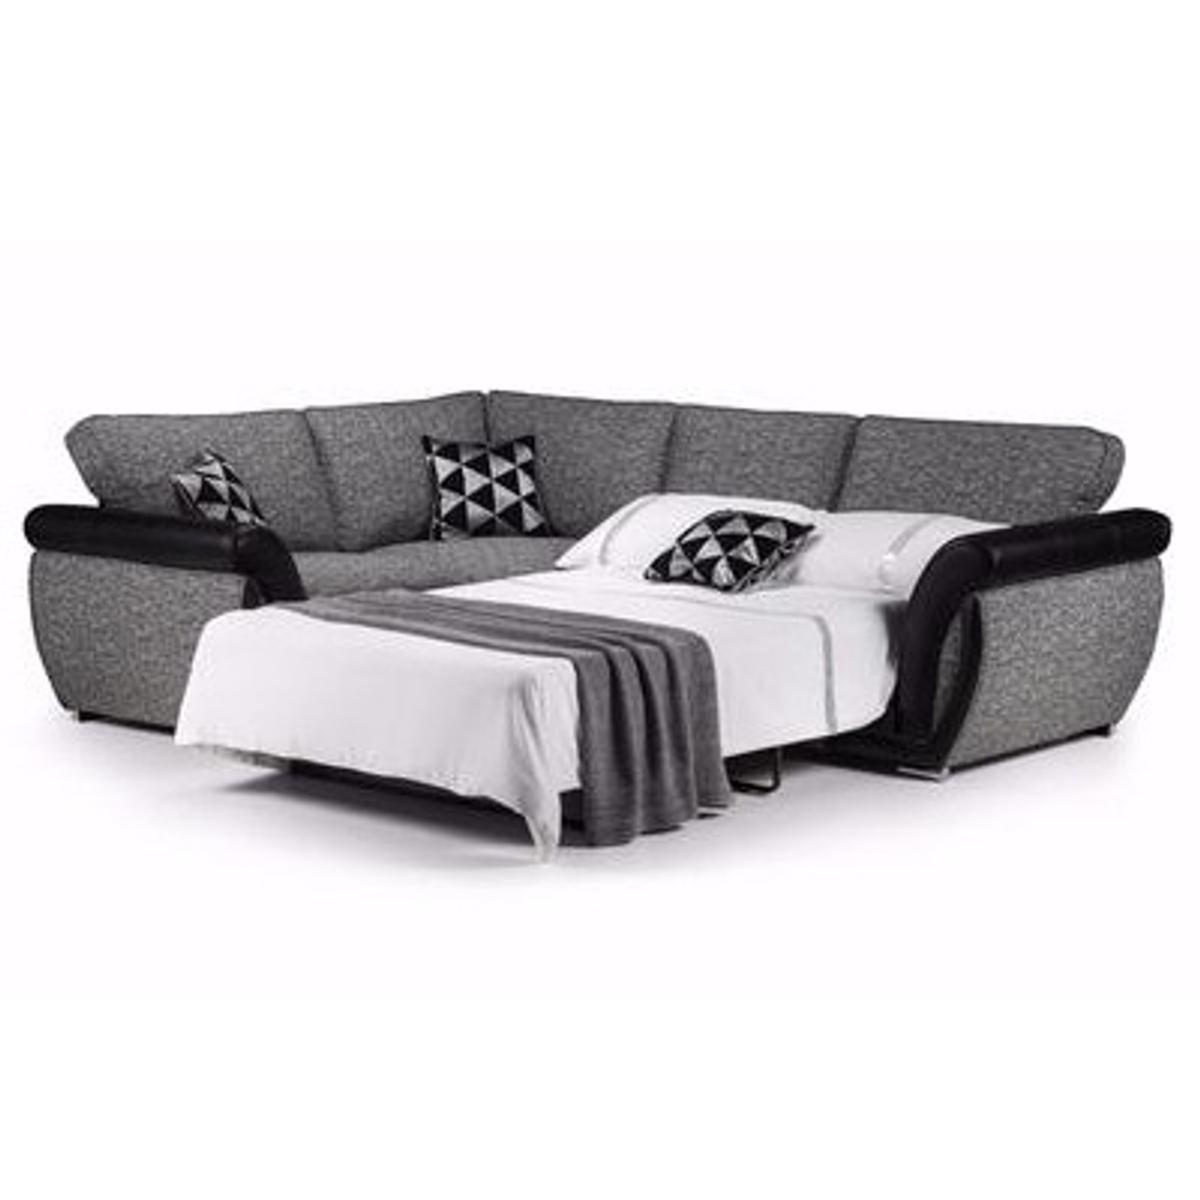 Sofa Bed Express Delivery Luxury Shannon Corner Sofa Bed